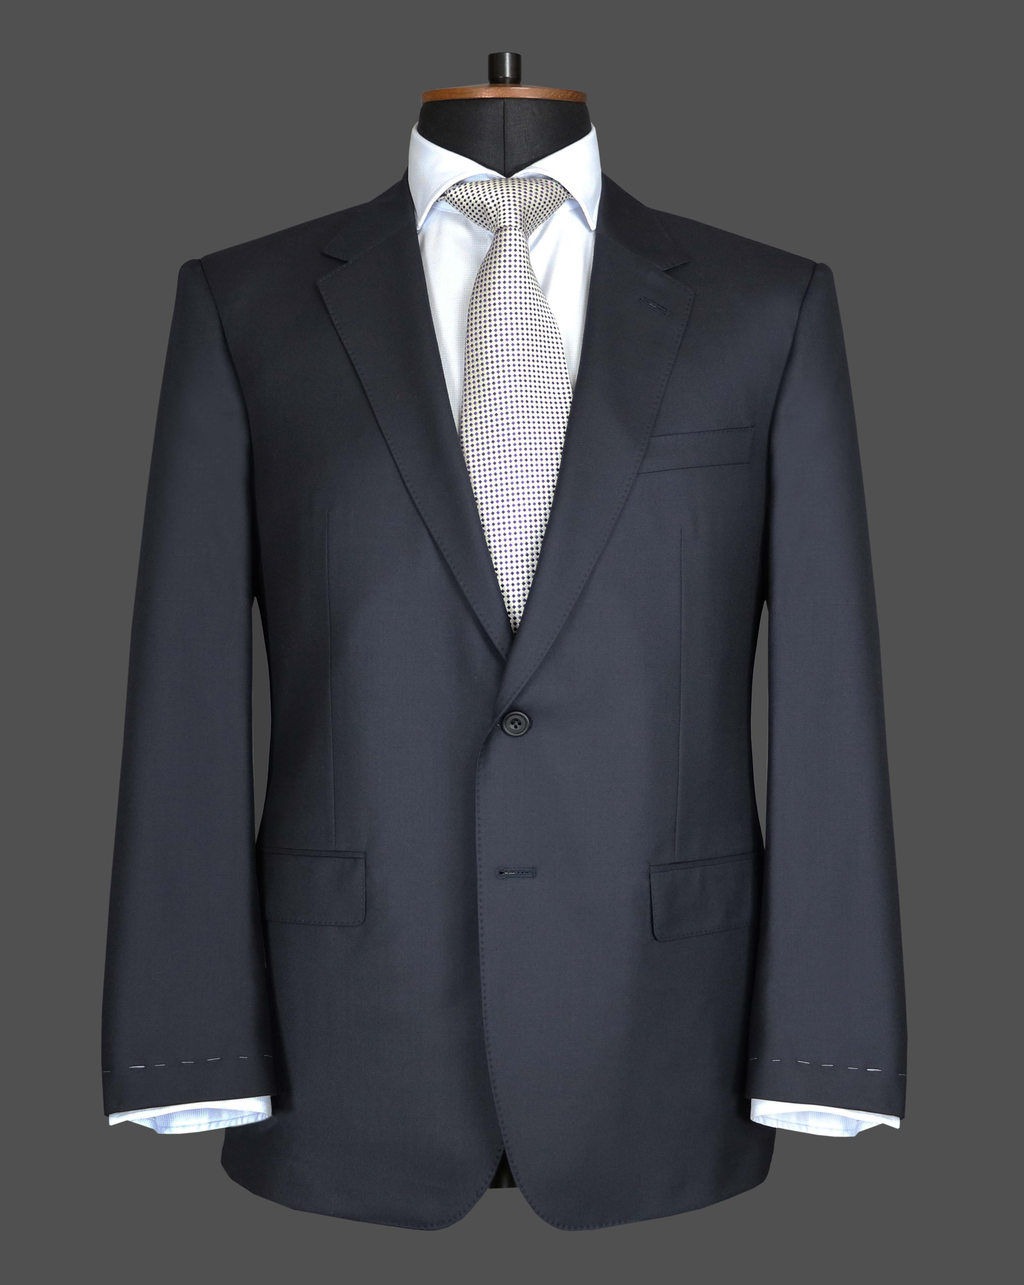 TLA014 - Plain Navy Suit